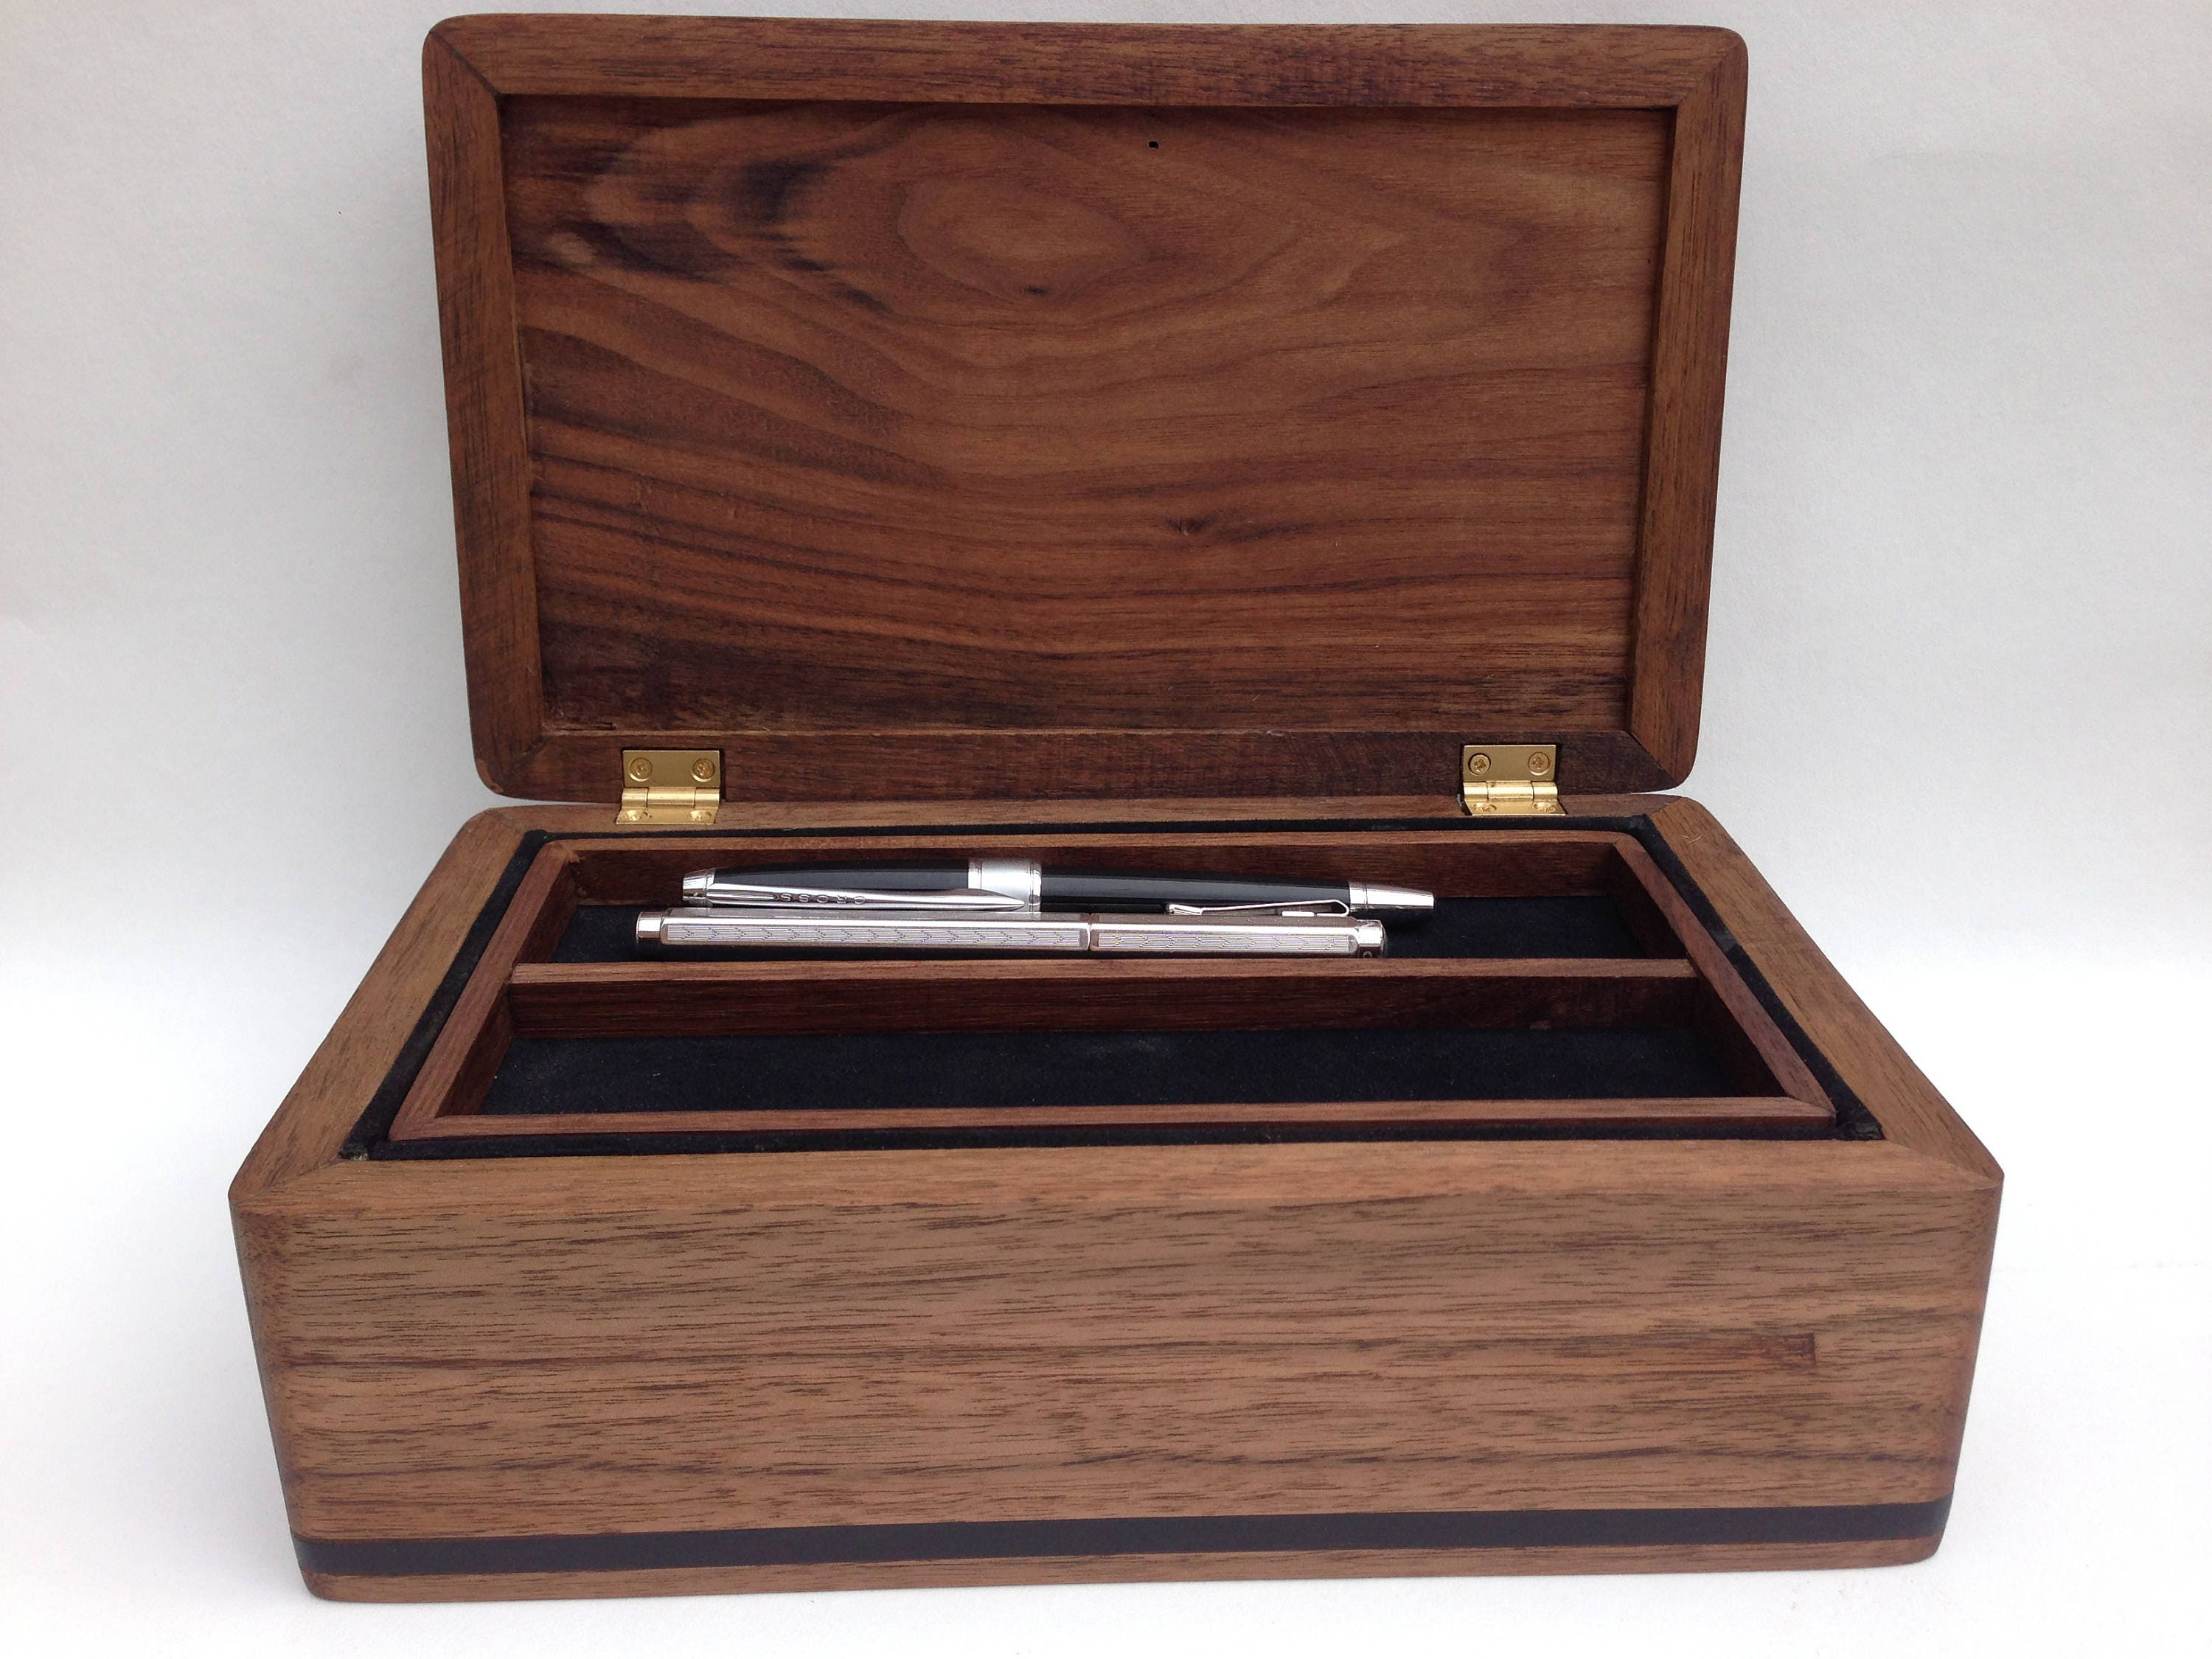 Pellow Handmade solid wood modern box Walnut and ironwood valet or jewellery box but you can customise it in wood size and interior.